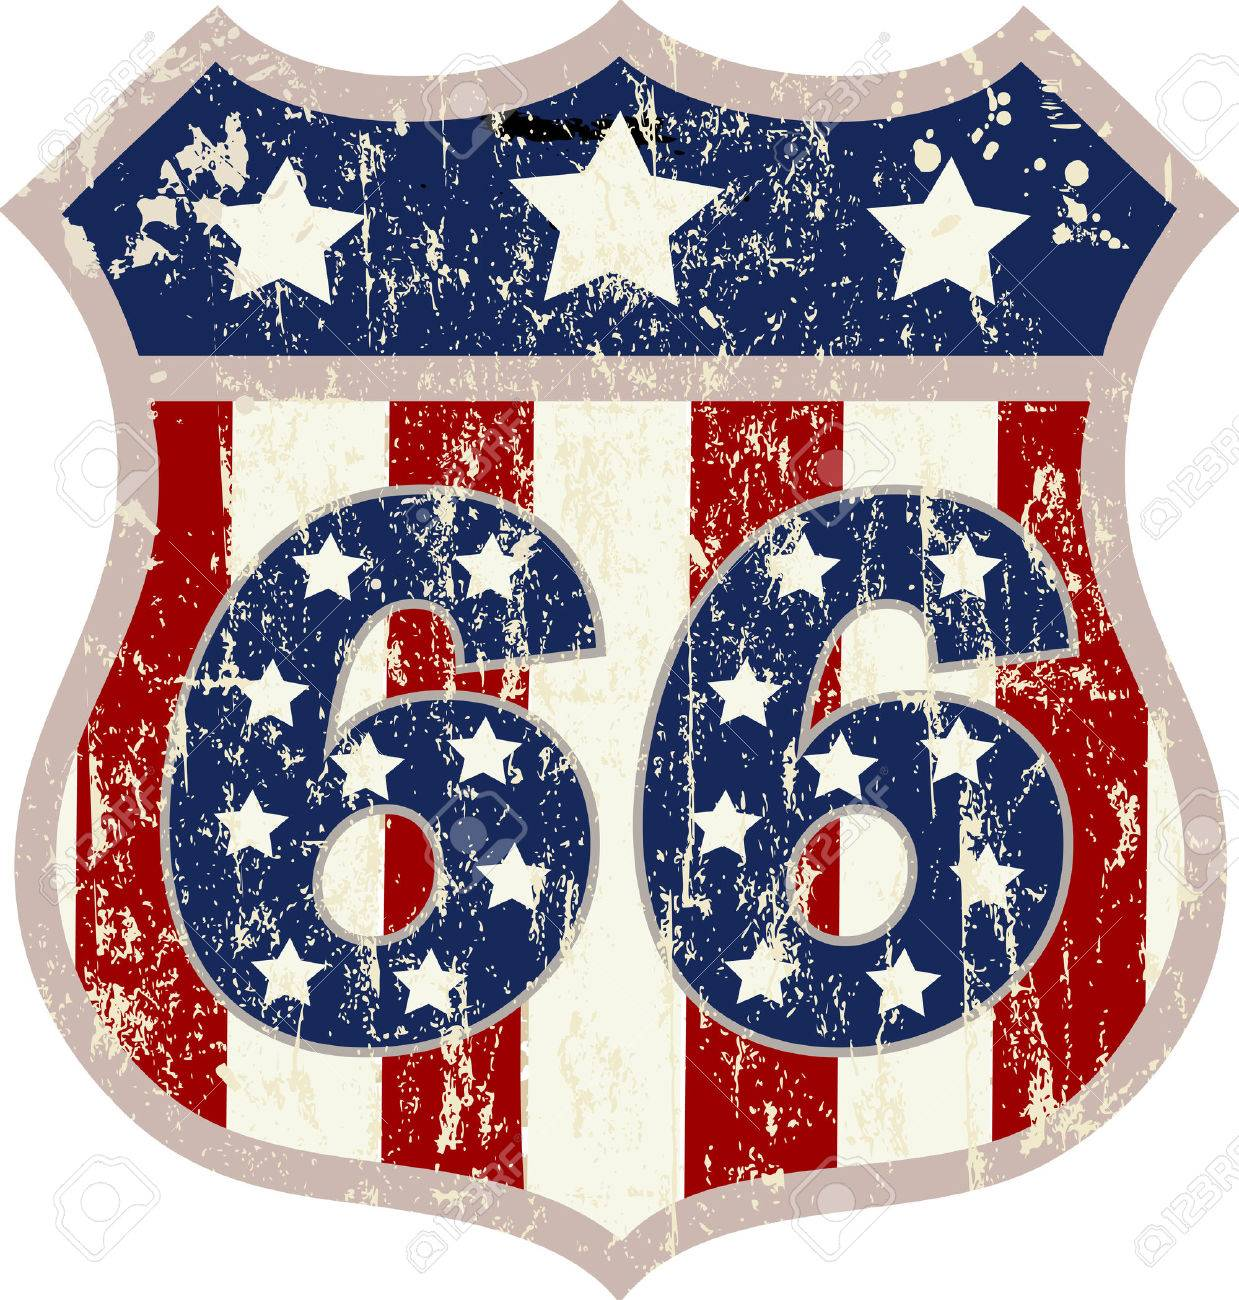 vintage route 66 road sign, retro style, vector illustration - 37825822